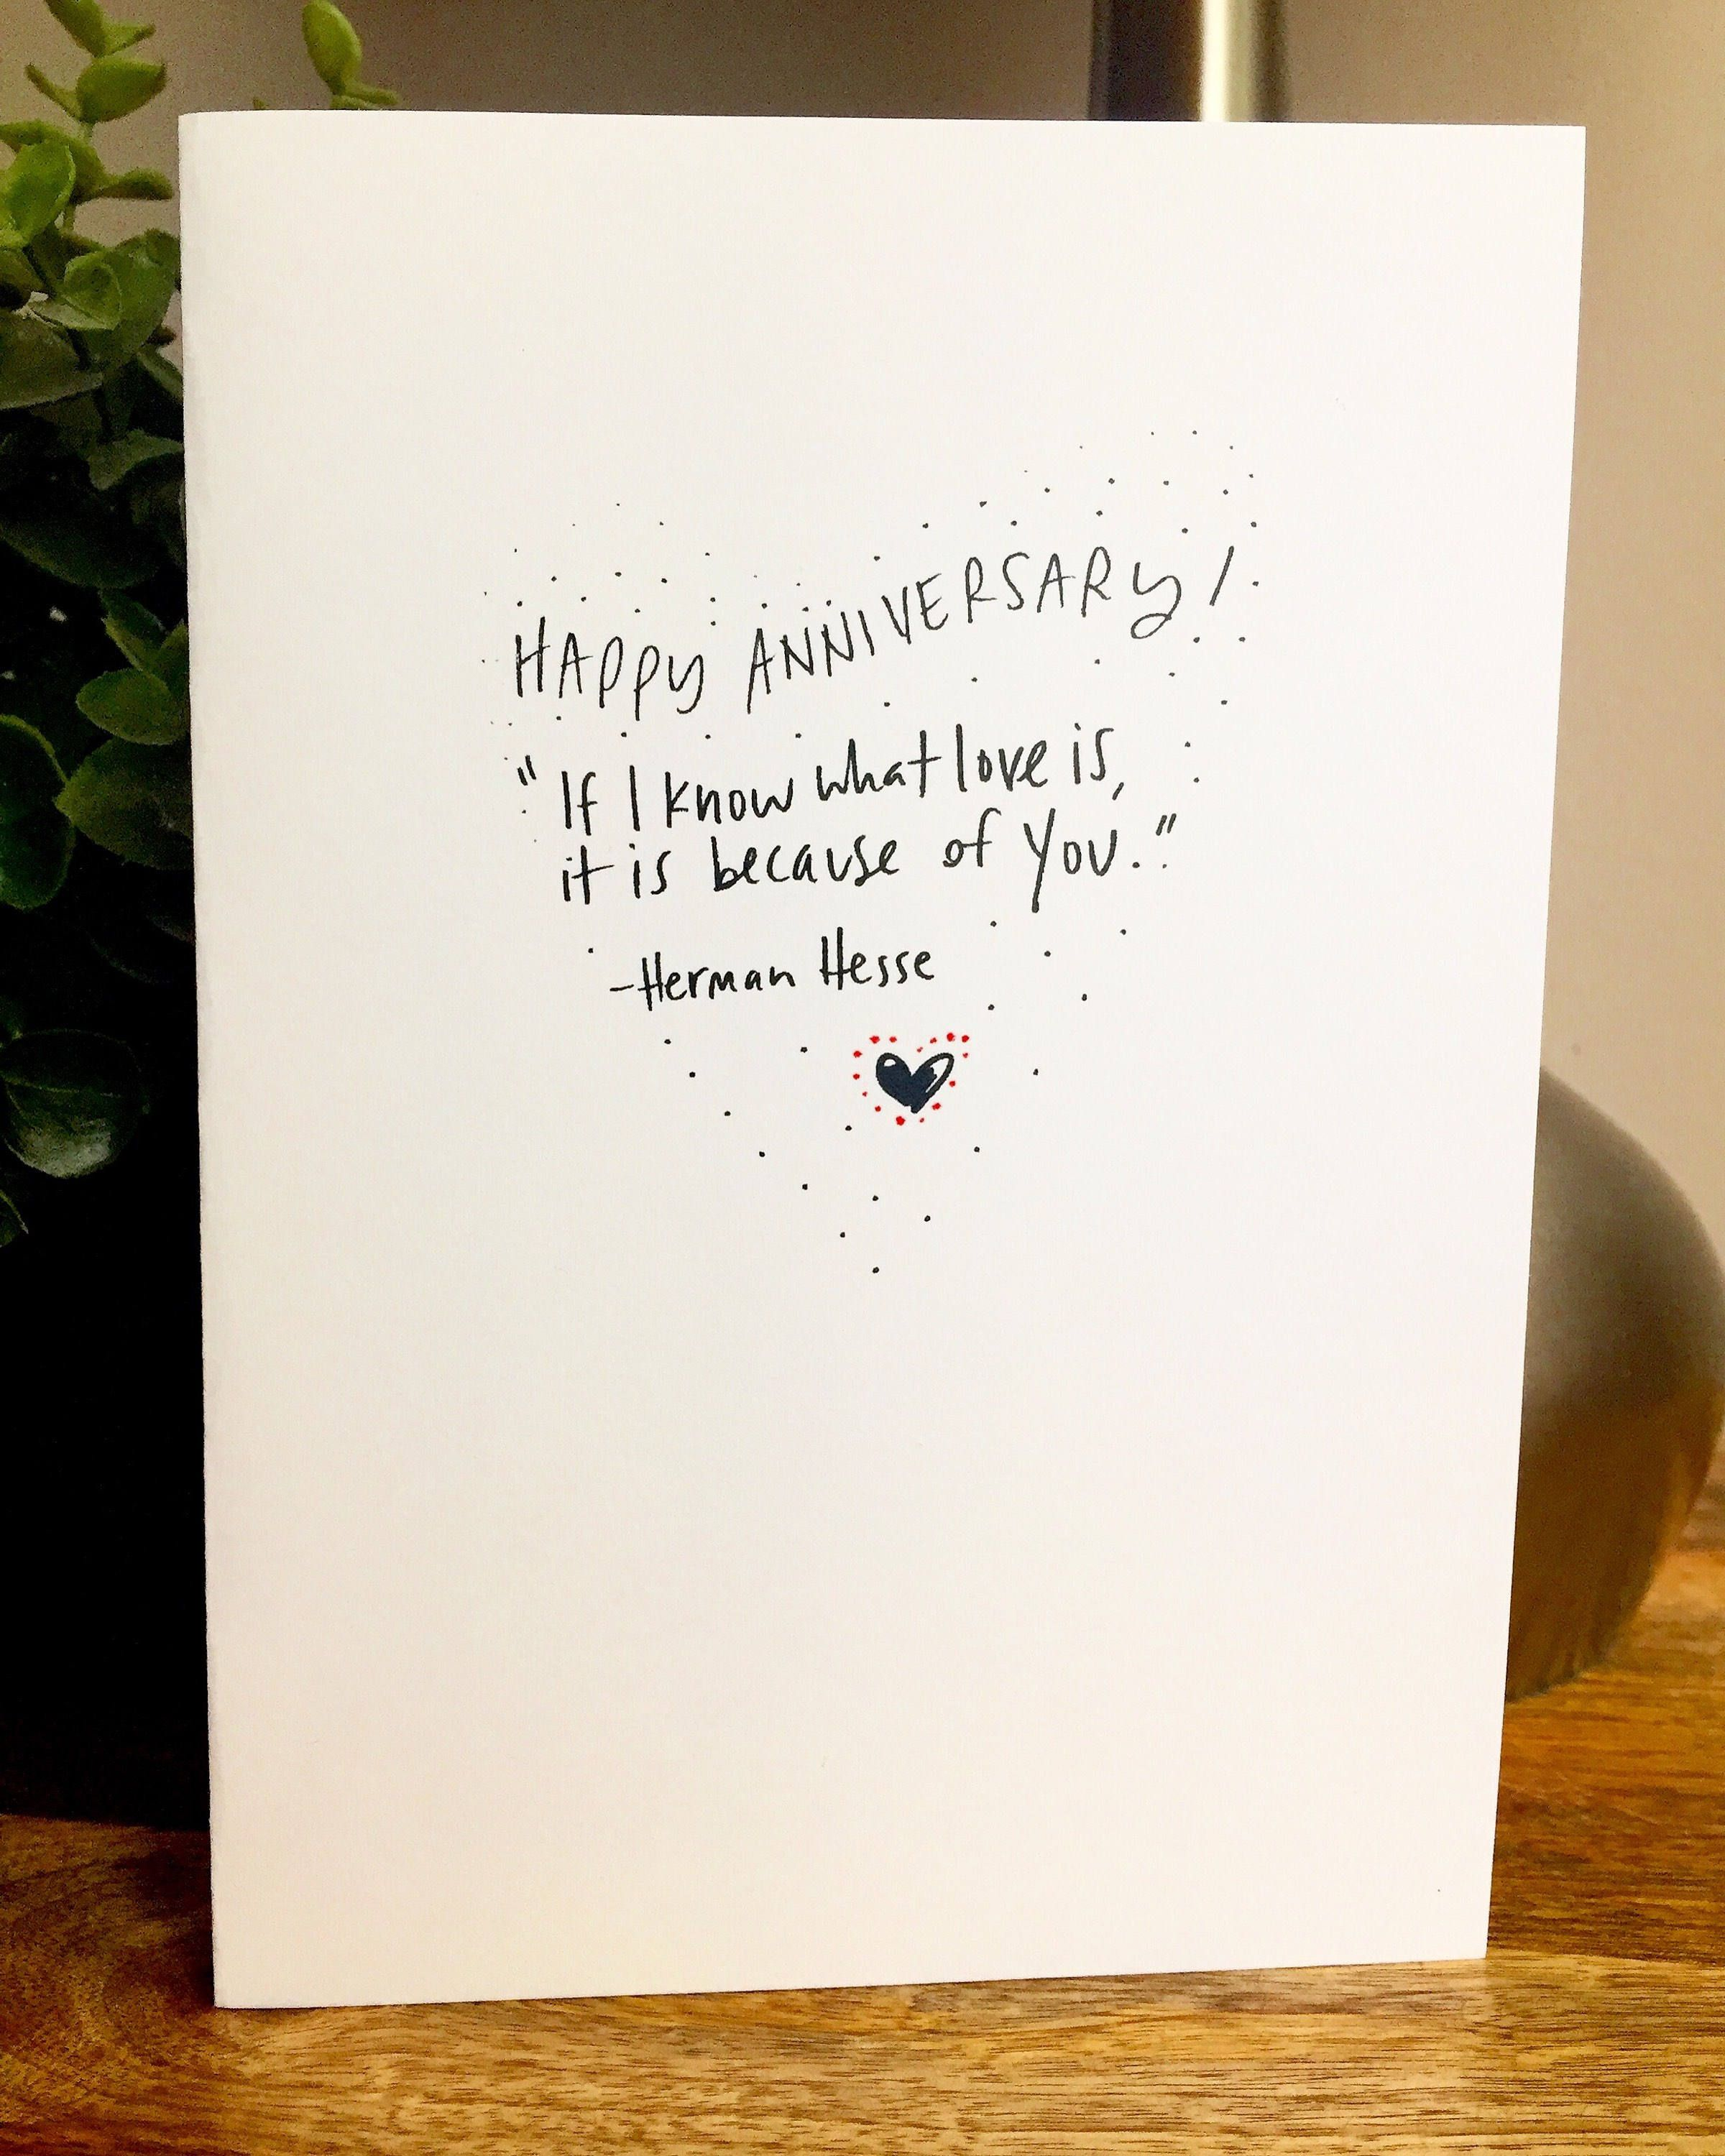 One year anniversary card for husband paper anniversary card for one year anniversary card for her paper anniversary anniversary card for boyfriend 365 days 1st wedding anniversary love quote card kristyandbryce Gallery